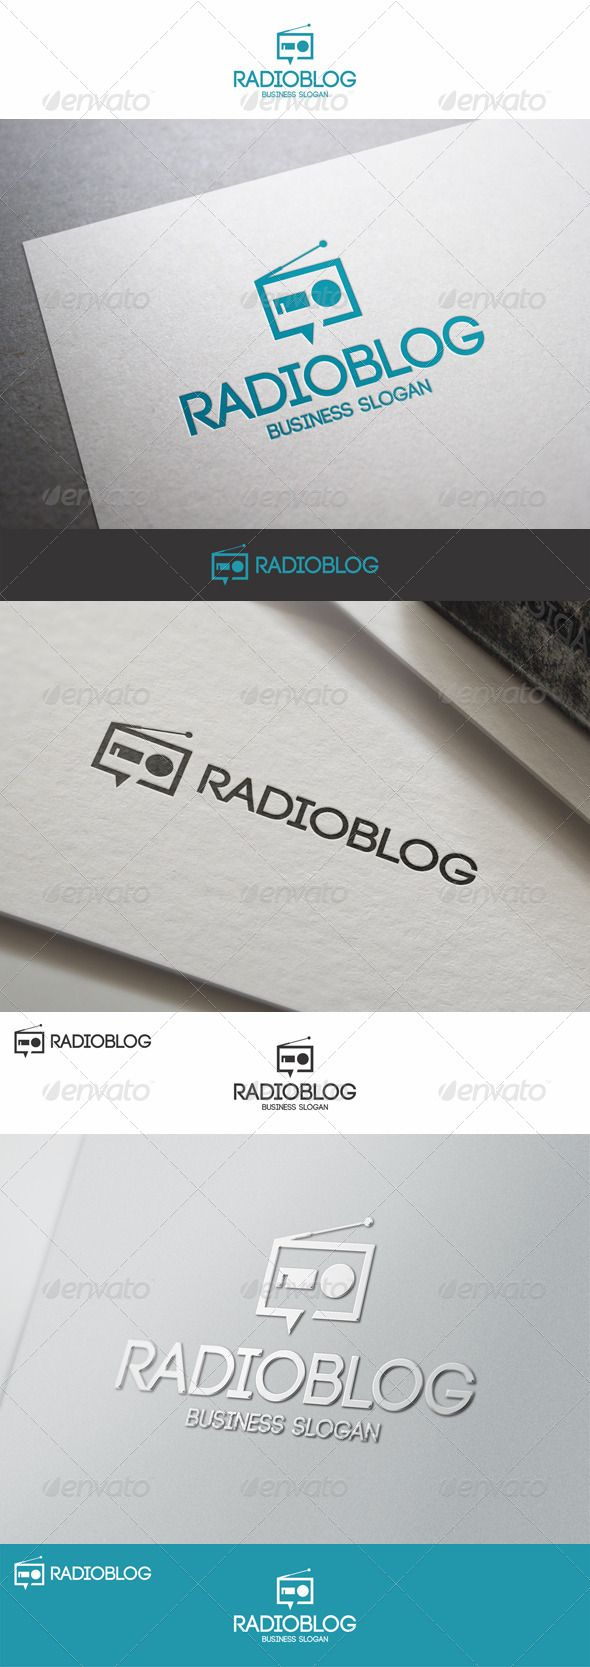 Radio Blog Logo Template – suitable for websites, radio blogs, software and applications, audio news, radio station, radio chat , blogs, radio channels, media business, entertainment, audio bloggers, radio studio, audio designers, etc.